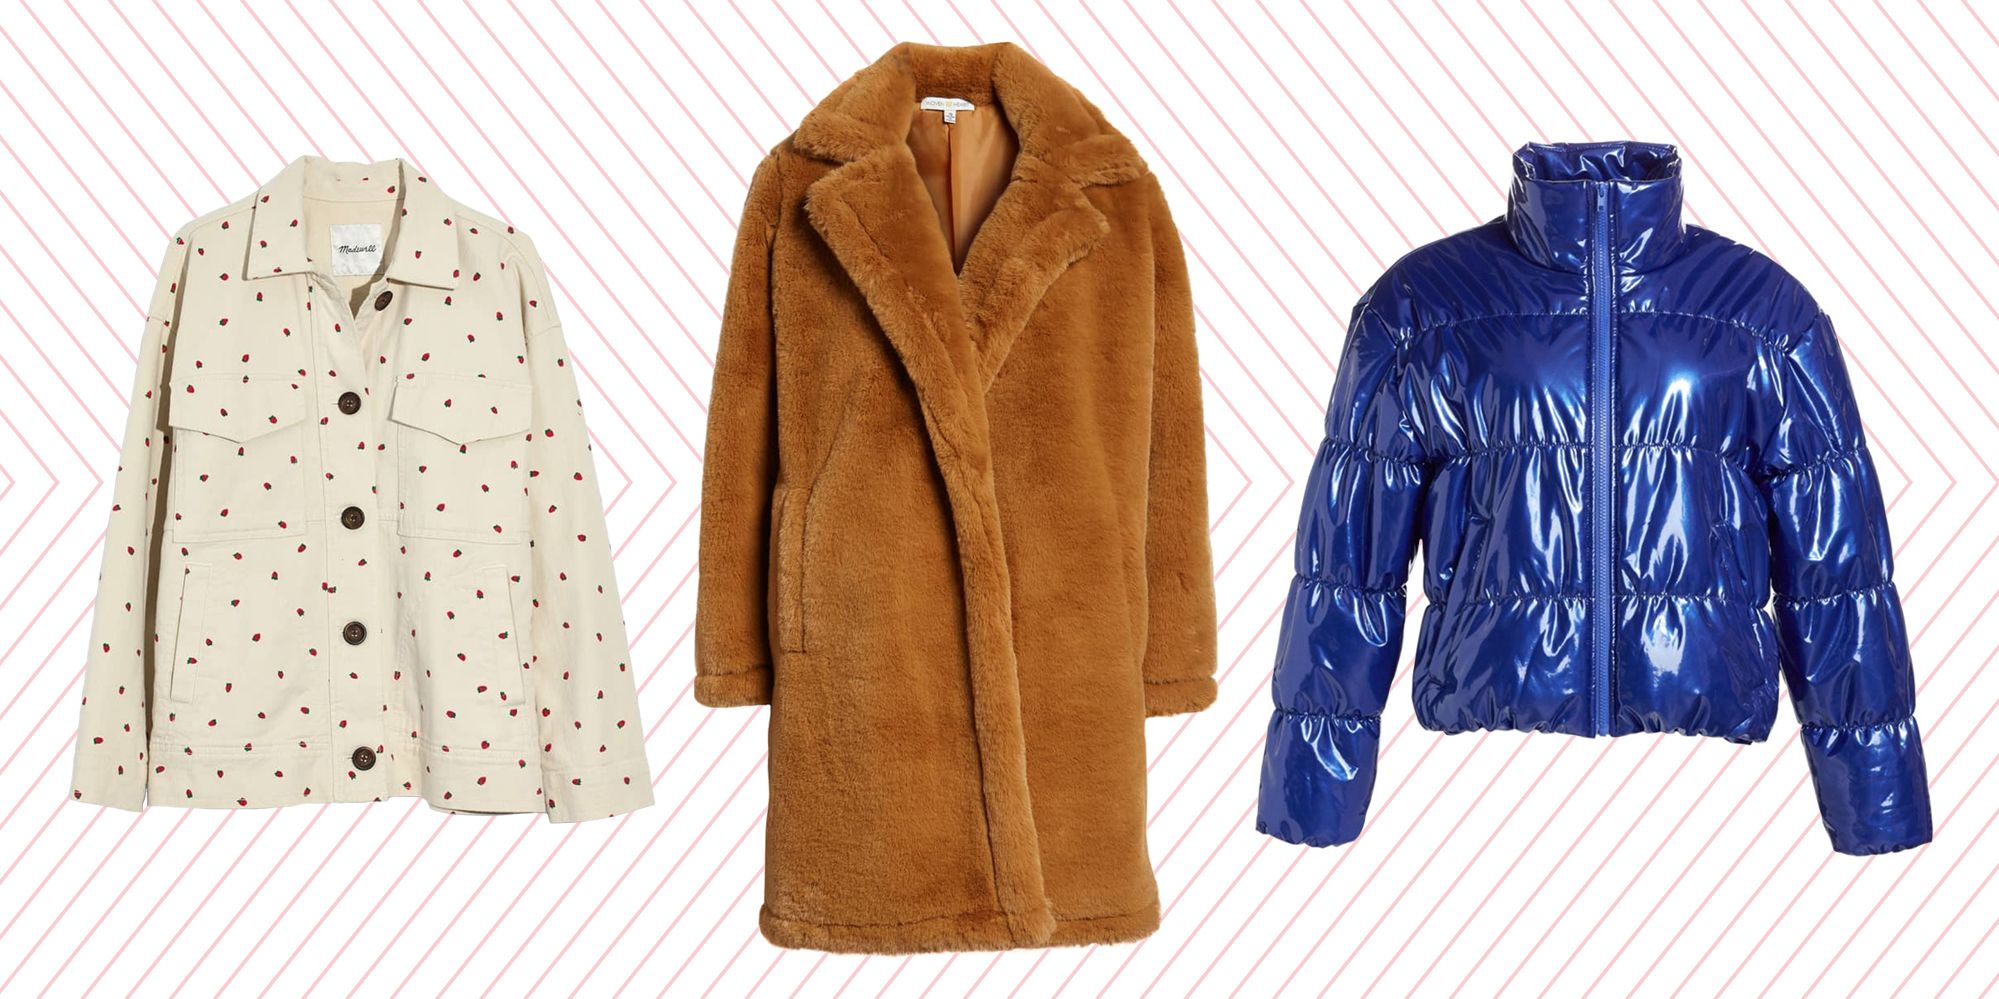 The Absolute Best Outerwear for Fall, All Under $250